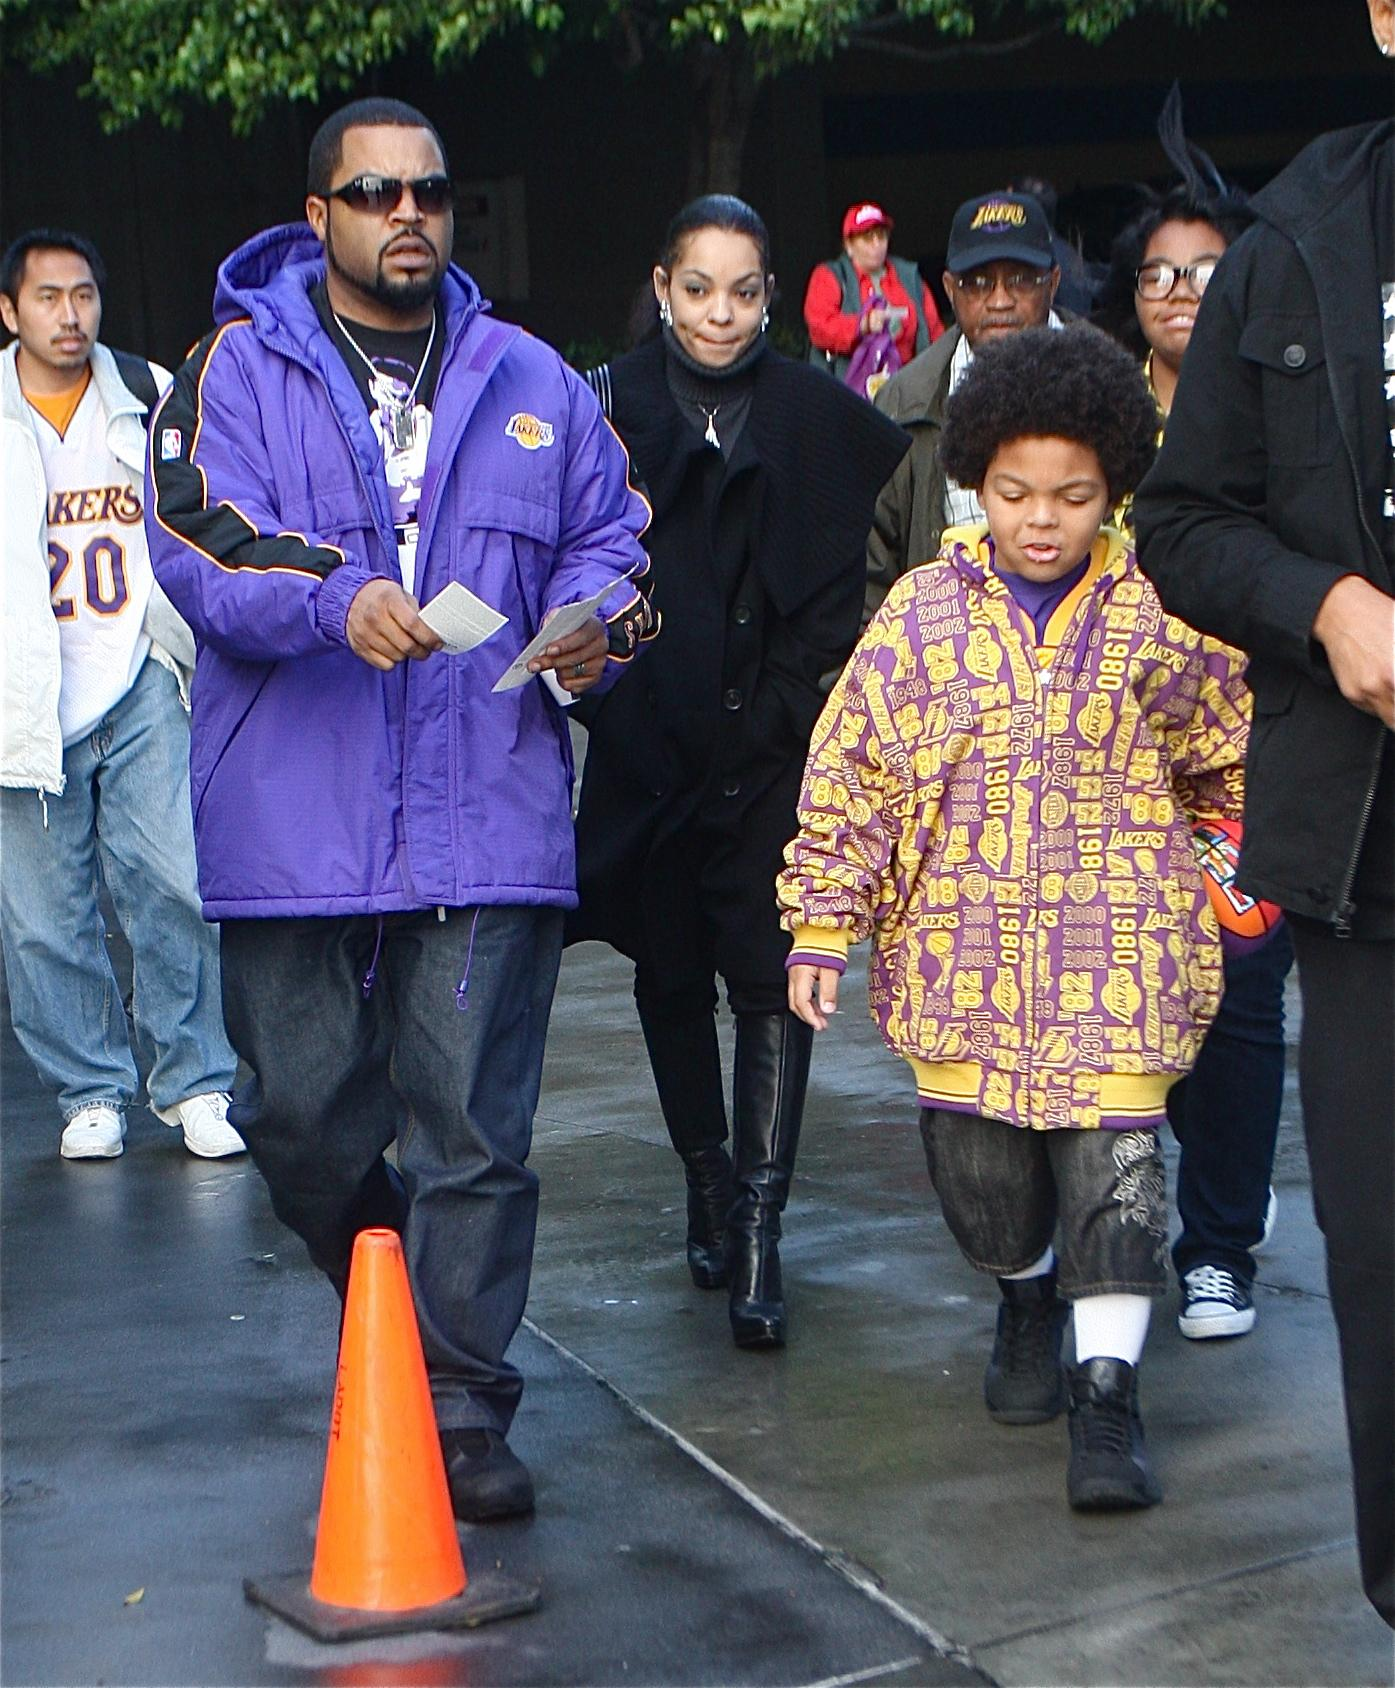 ICE CUBE AND FAMILY AT A LAKERS GAME